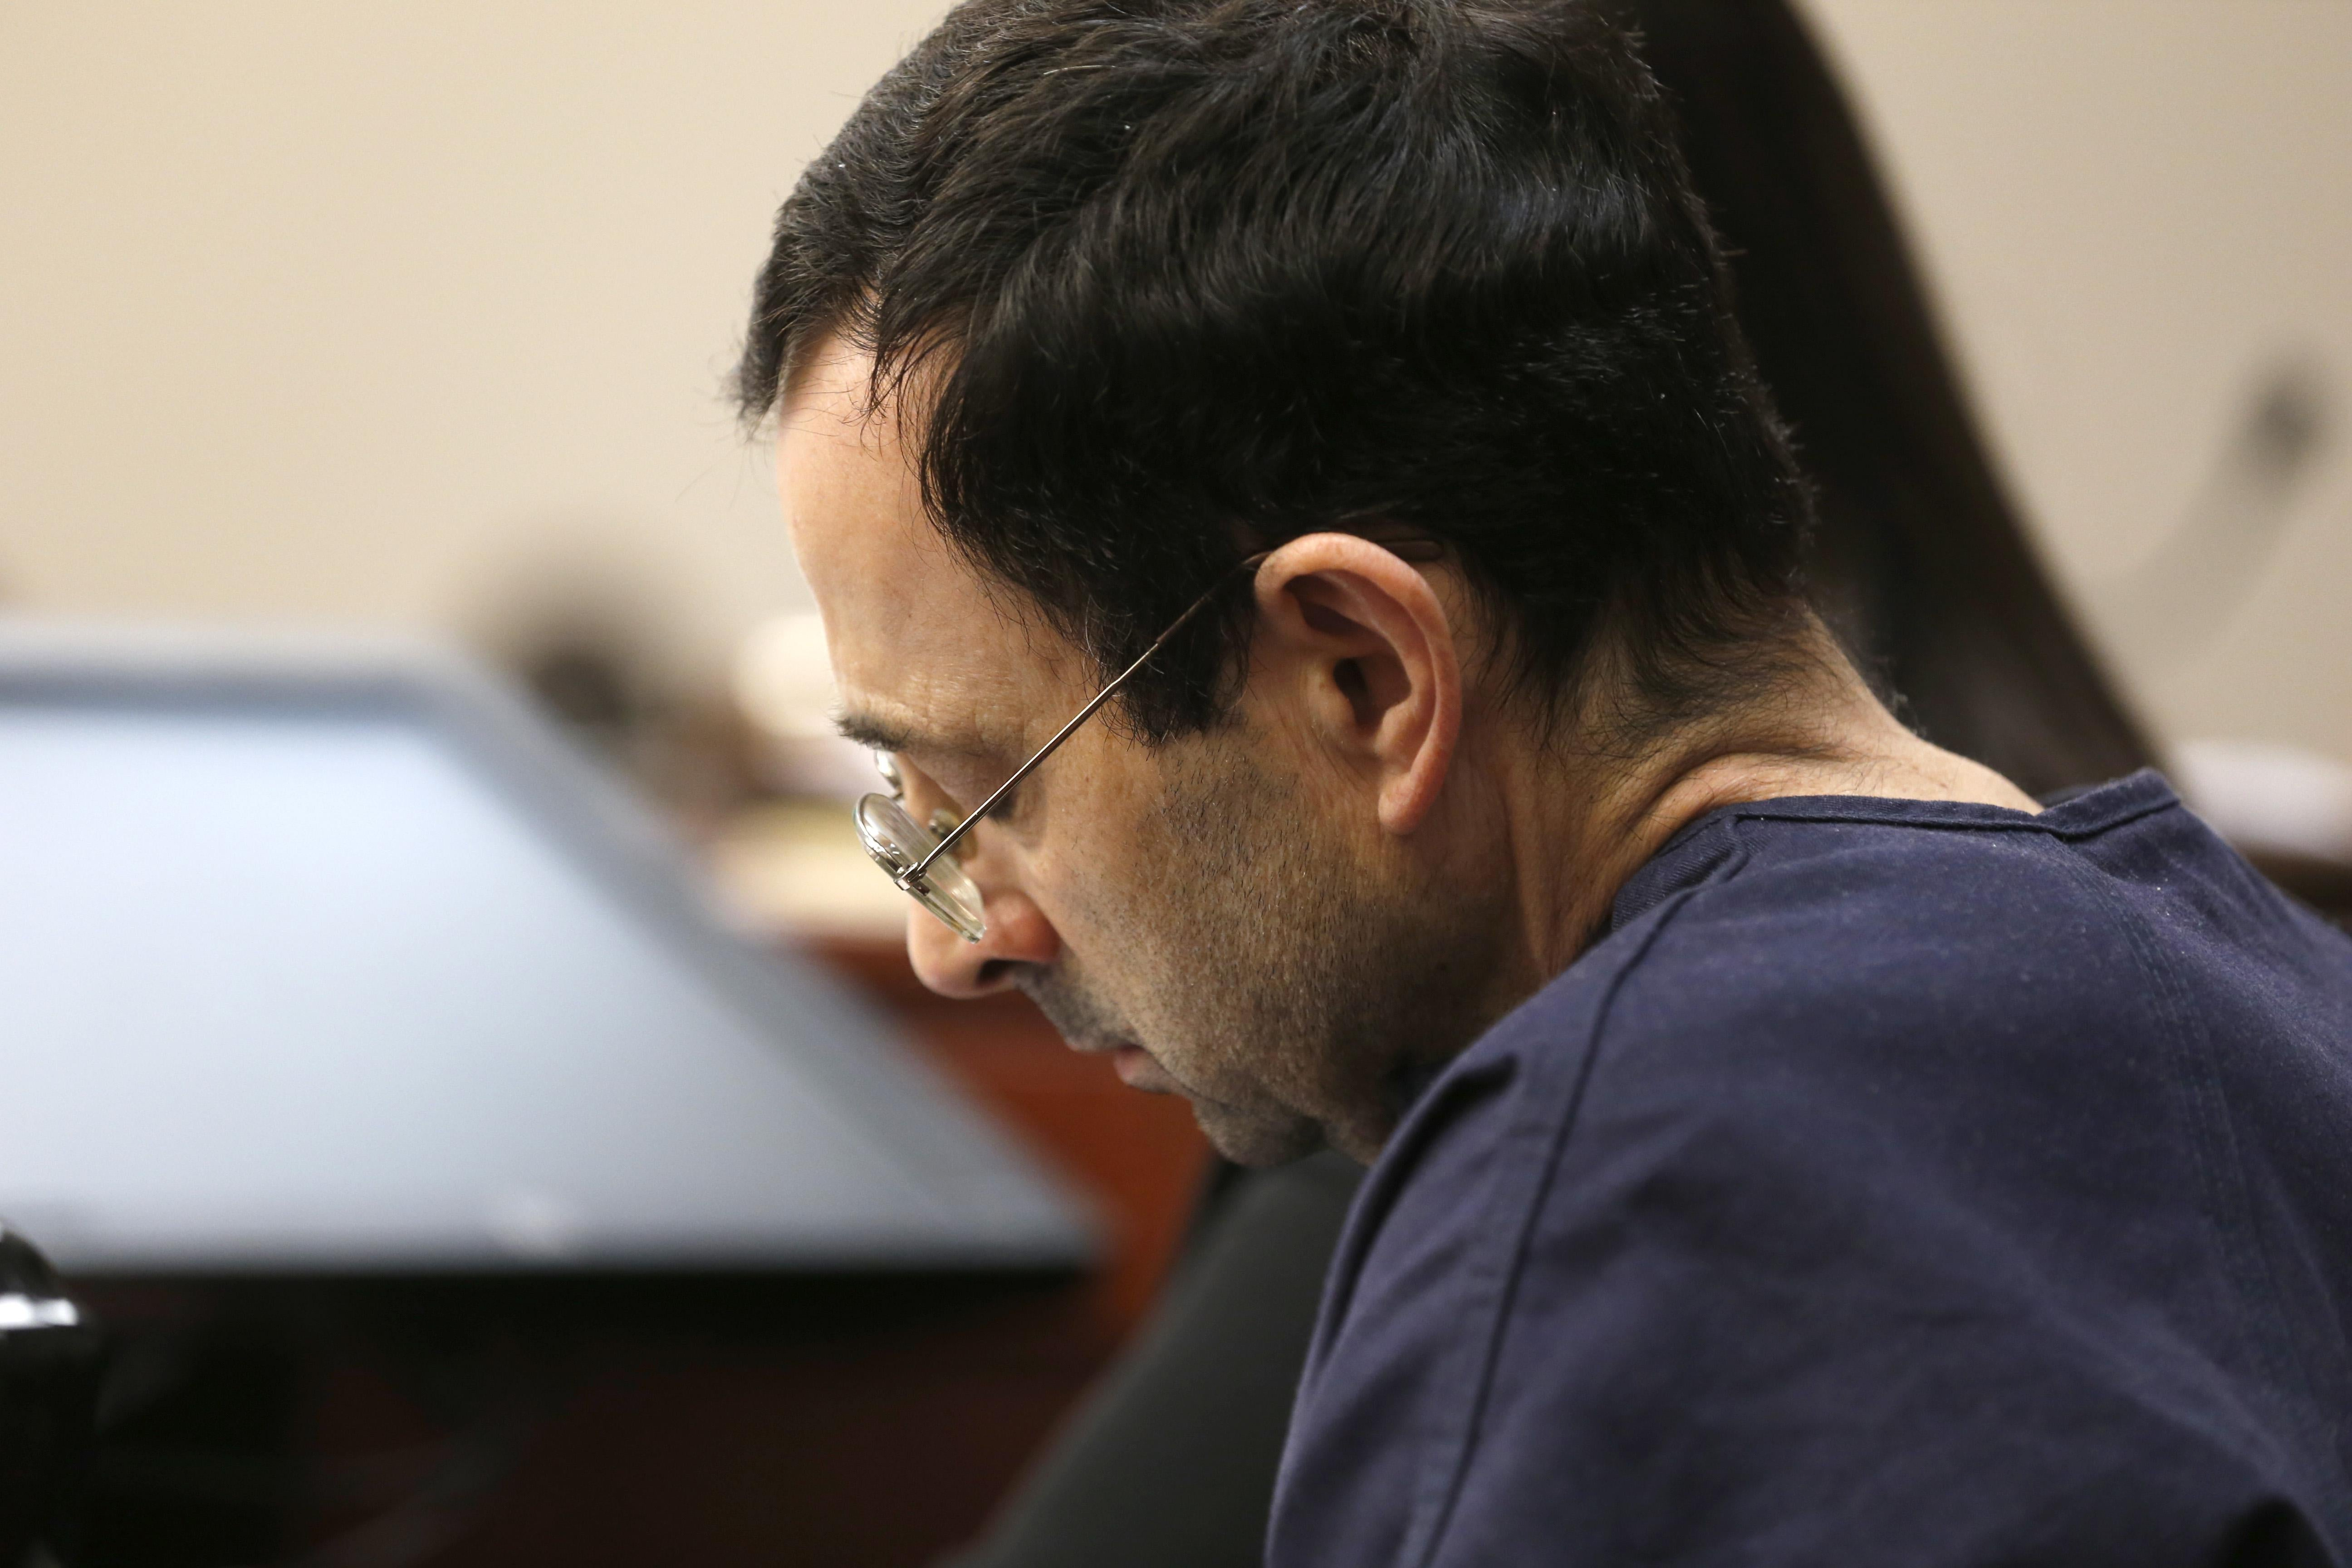 Former Michigan State University and USA Gymnastics doctor Larry Nassar listens to impact statements during the sentencing phase in Ingham County Circuit Court on January 24, 2018 in Lansing, Michigan.         More than 100 women and girls accuse Nassar of a pattern of serial abuse dating back two decades, including the Olympic gold-medal winners Simone Biles, Aly Raisman, Gabby Douglas and McKayla Maroney -- who have lashed out at top sporting officials for failing to stop him.    / AFP PHOTO / JEFF KOWALSKY        (Photo credit should read JEFF KOWALSKY/AFP/Getty Images)